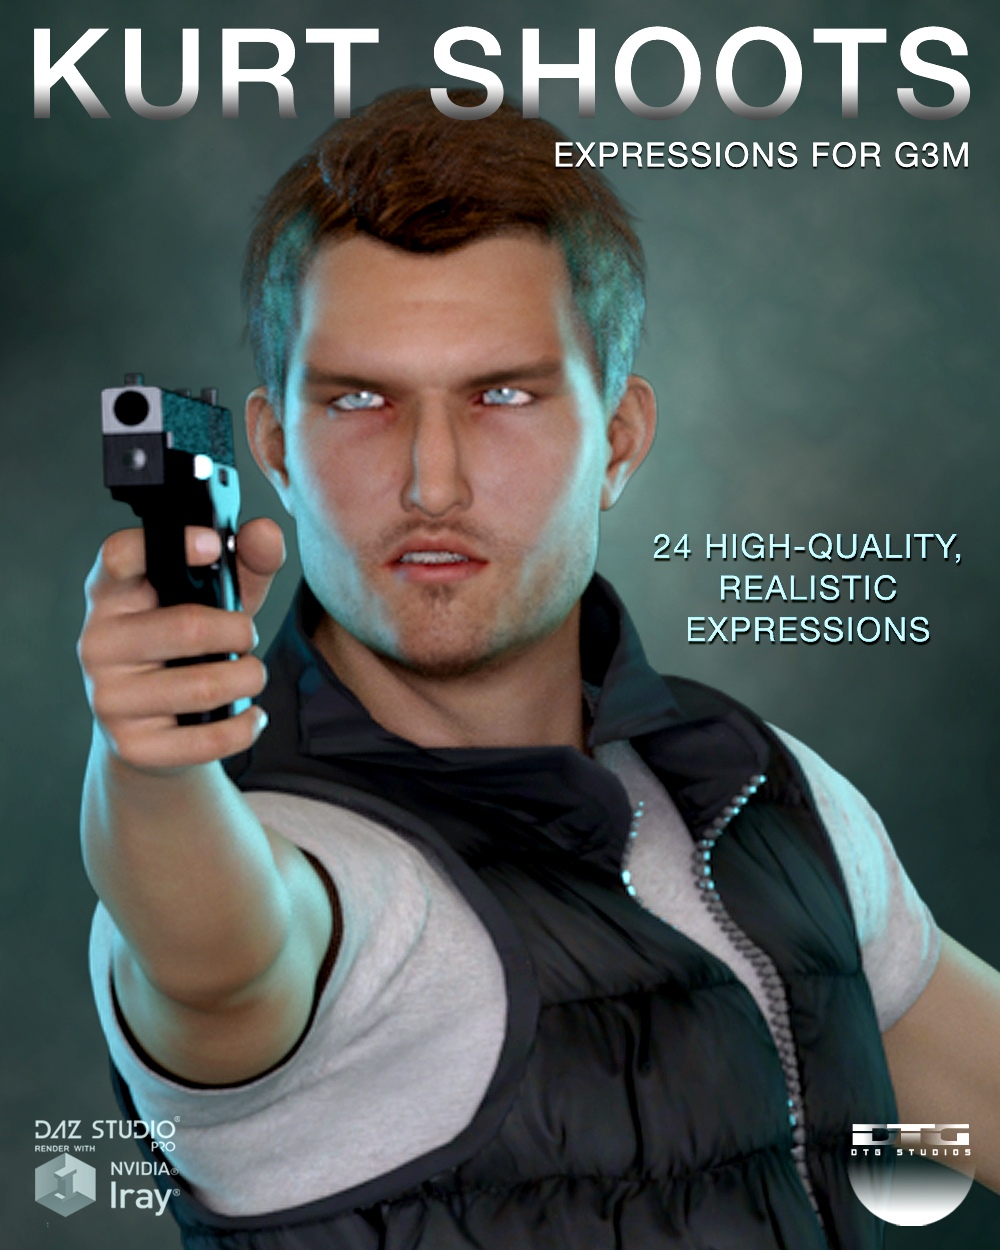 DTG Studios' Kurt Shoots - Expressions for G3M by DTHUREGRIF